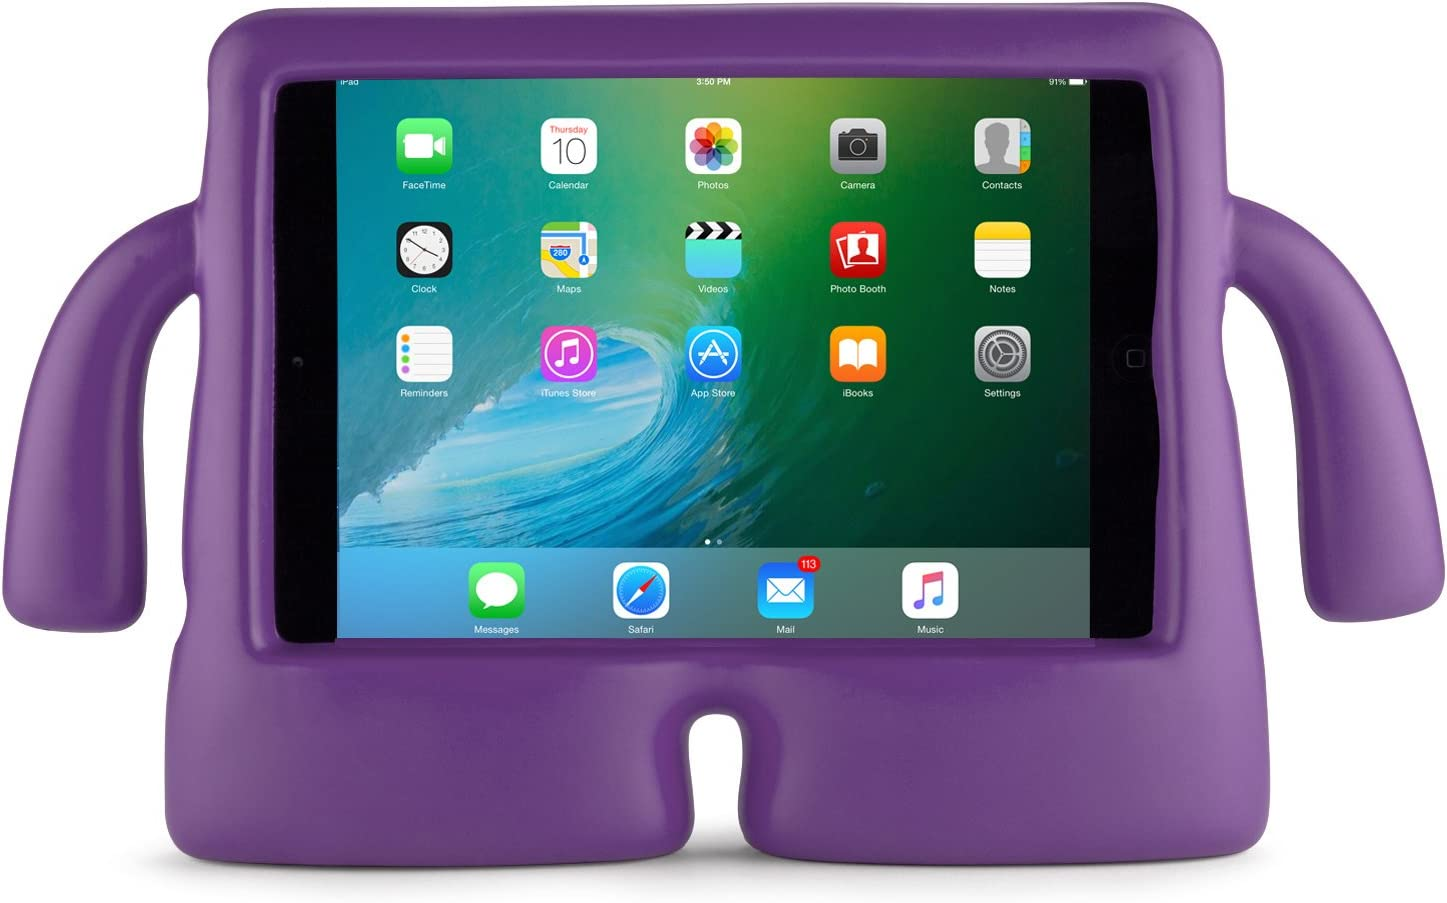 Speck Products 92840-B102 iGuy Freestanding Protective Case for iPad Mini 2/3/4, Grape Purple, 25-Pack Business Packaging